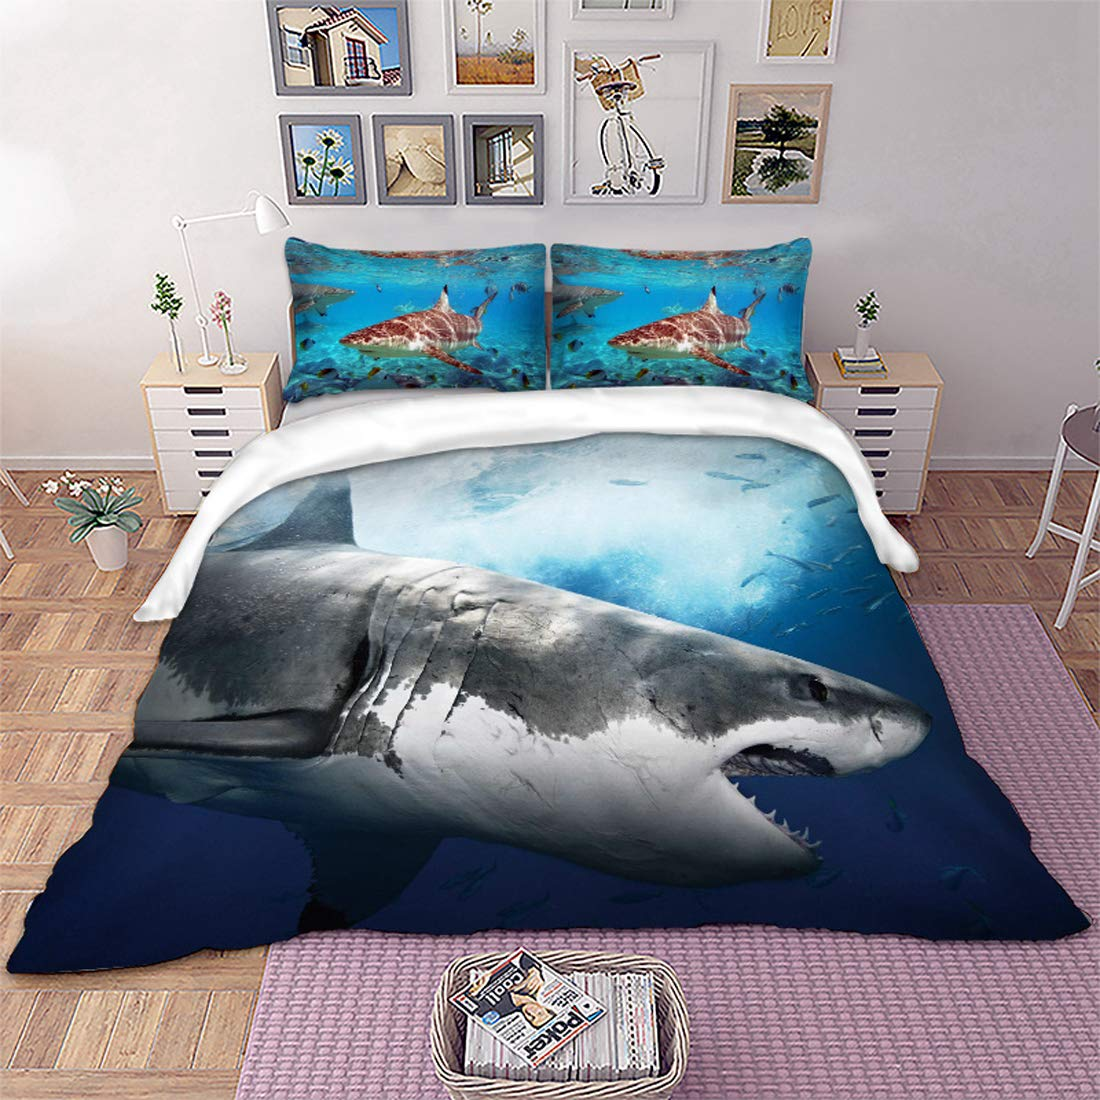 3D Shark Fish Bedding Duvet Cover Full 3 Piece Hawaiian Beach Theme Bedding Set Underwater Children Bedspread Cover Ocean Sea Themed Pattern Printed on Blue Comforter Cover for Kid Boy Girls Teen